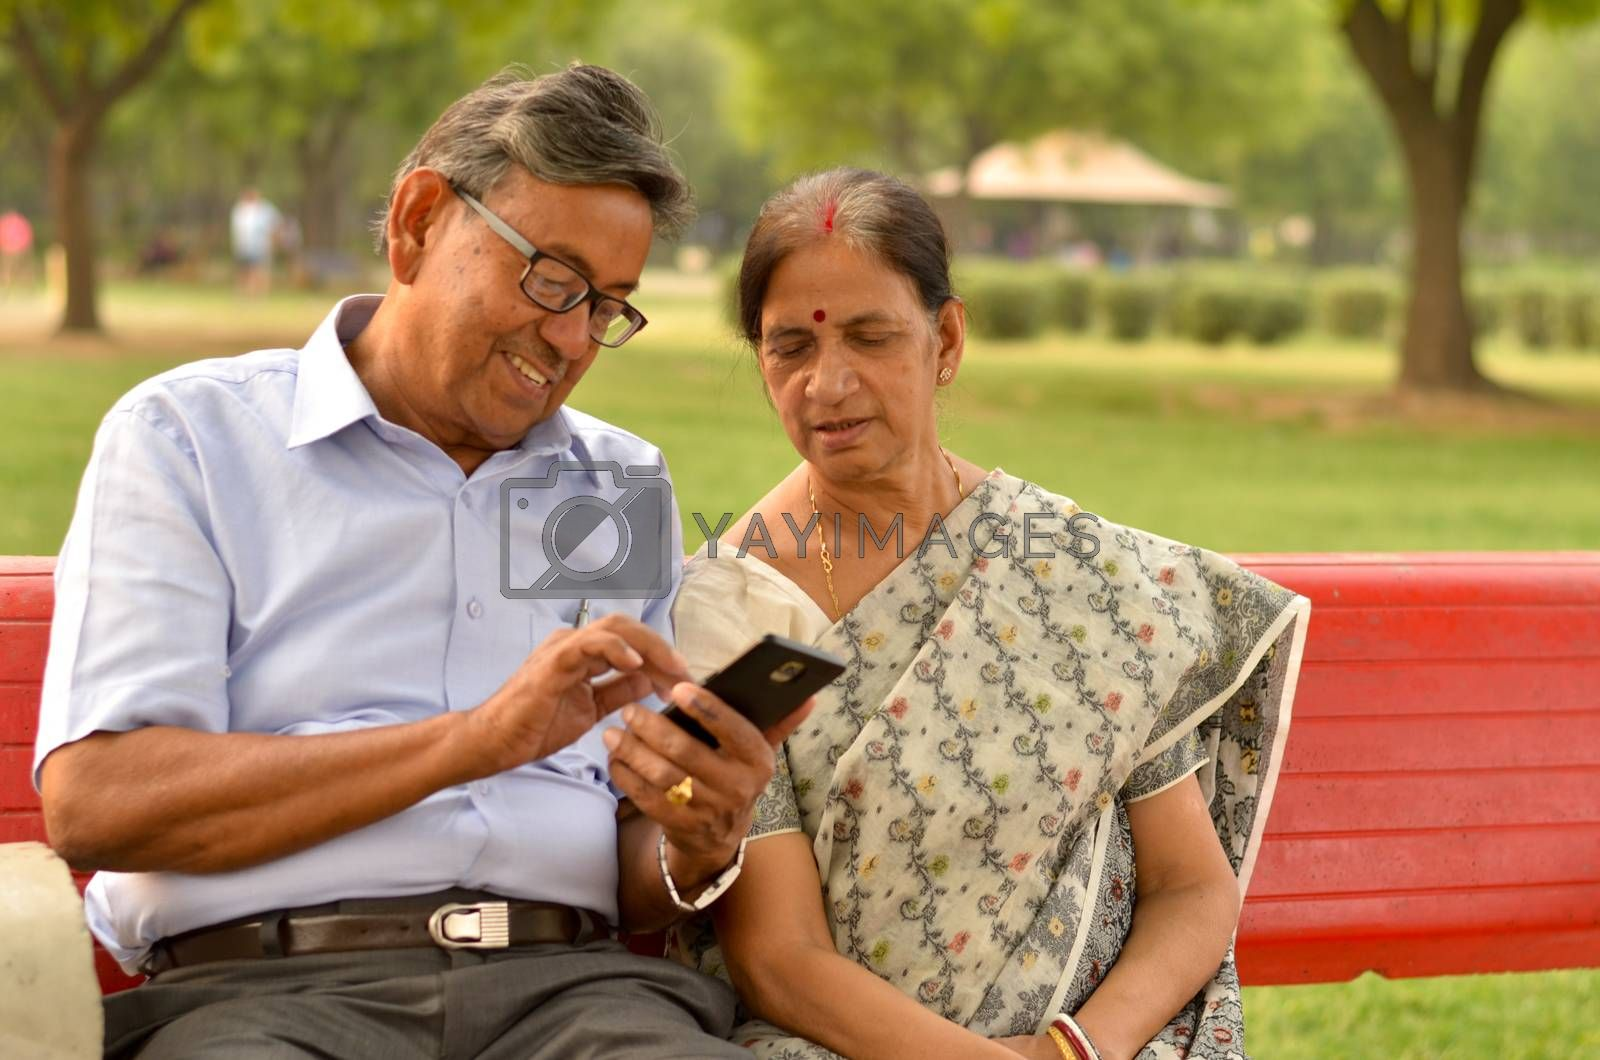 Portrait of senior couple sitting in park bench and looking at their smart phone and laughing in New Delhi, India with focus on the hands